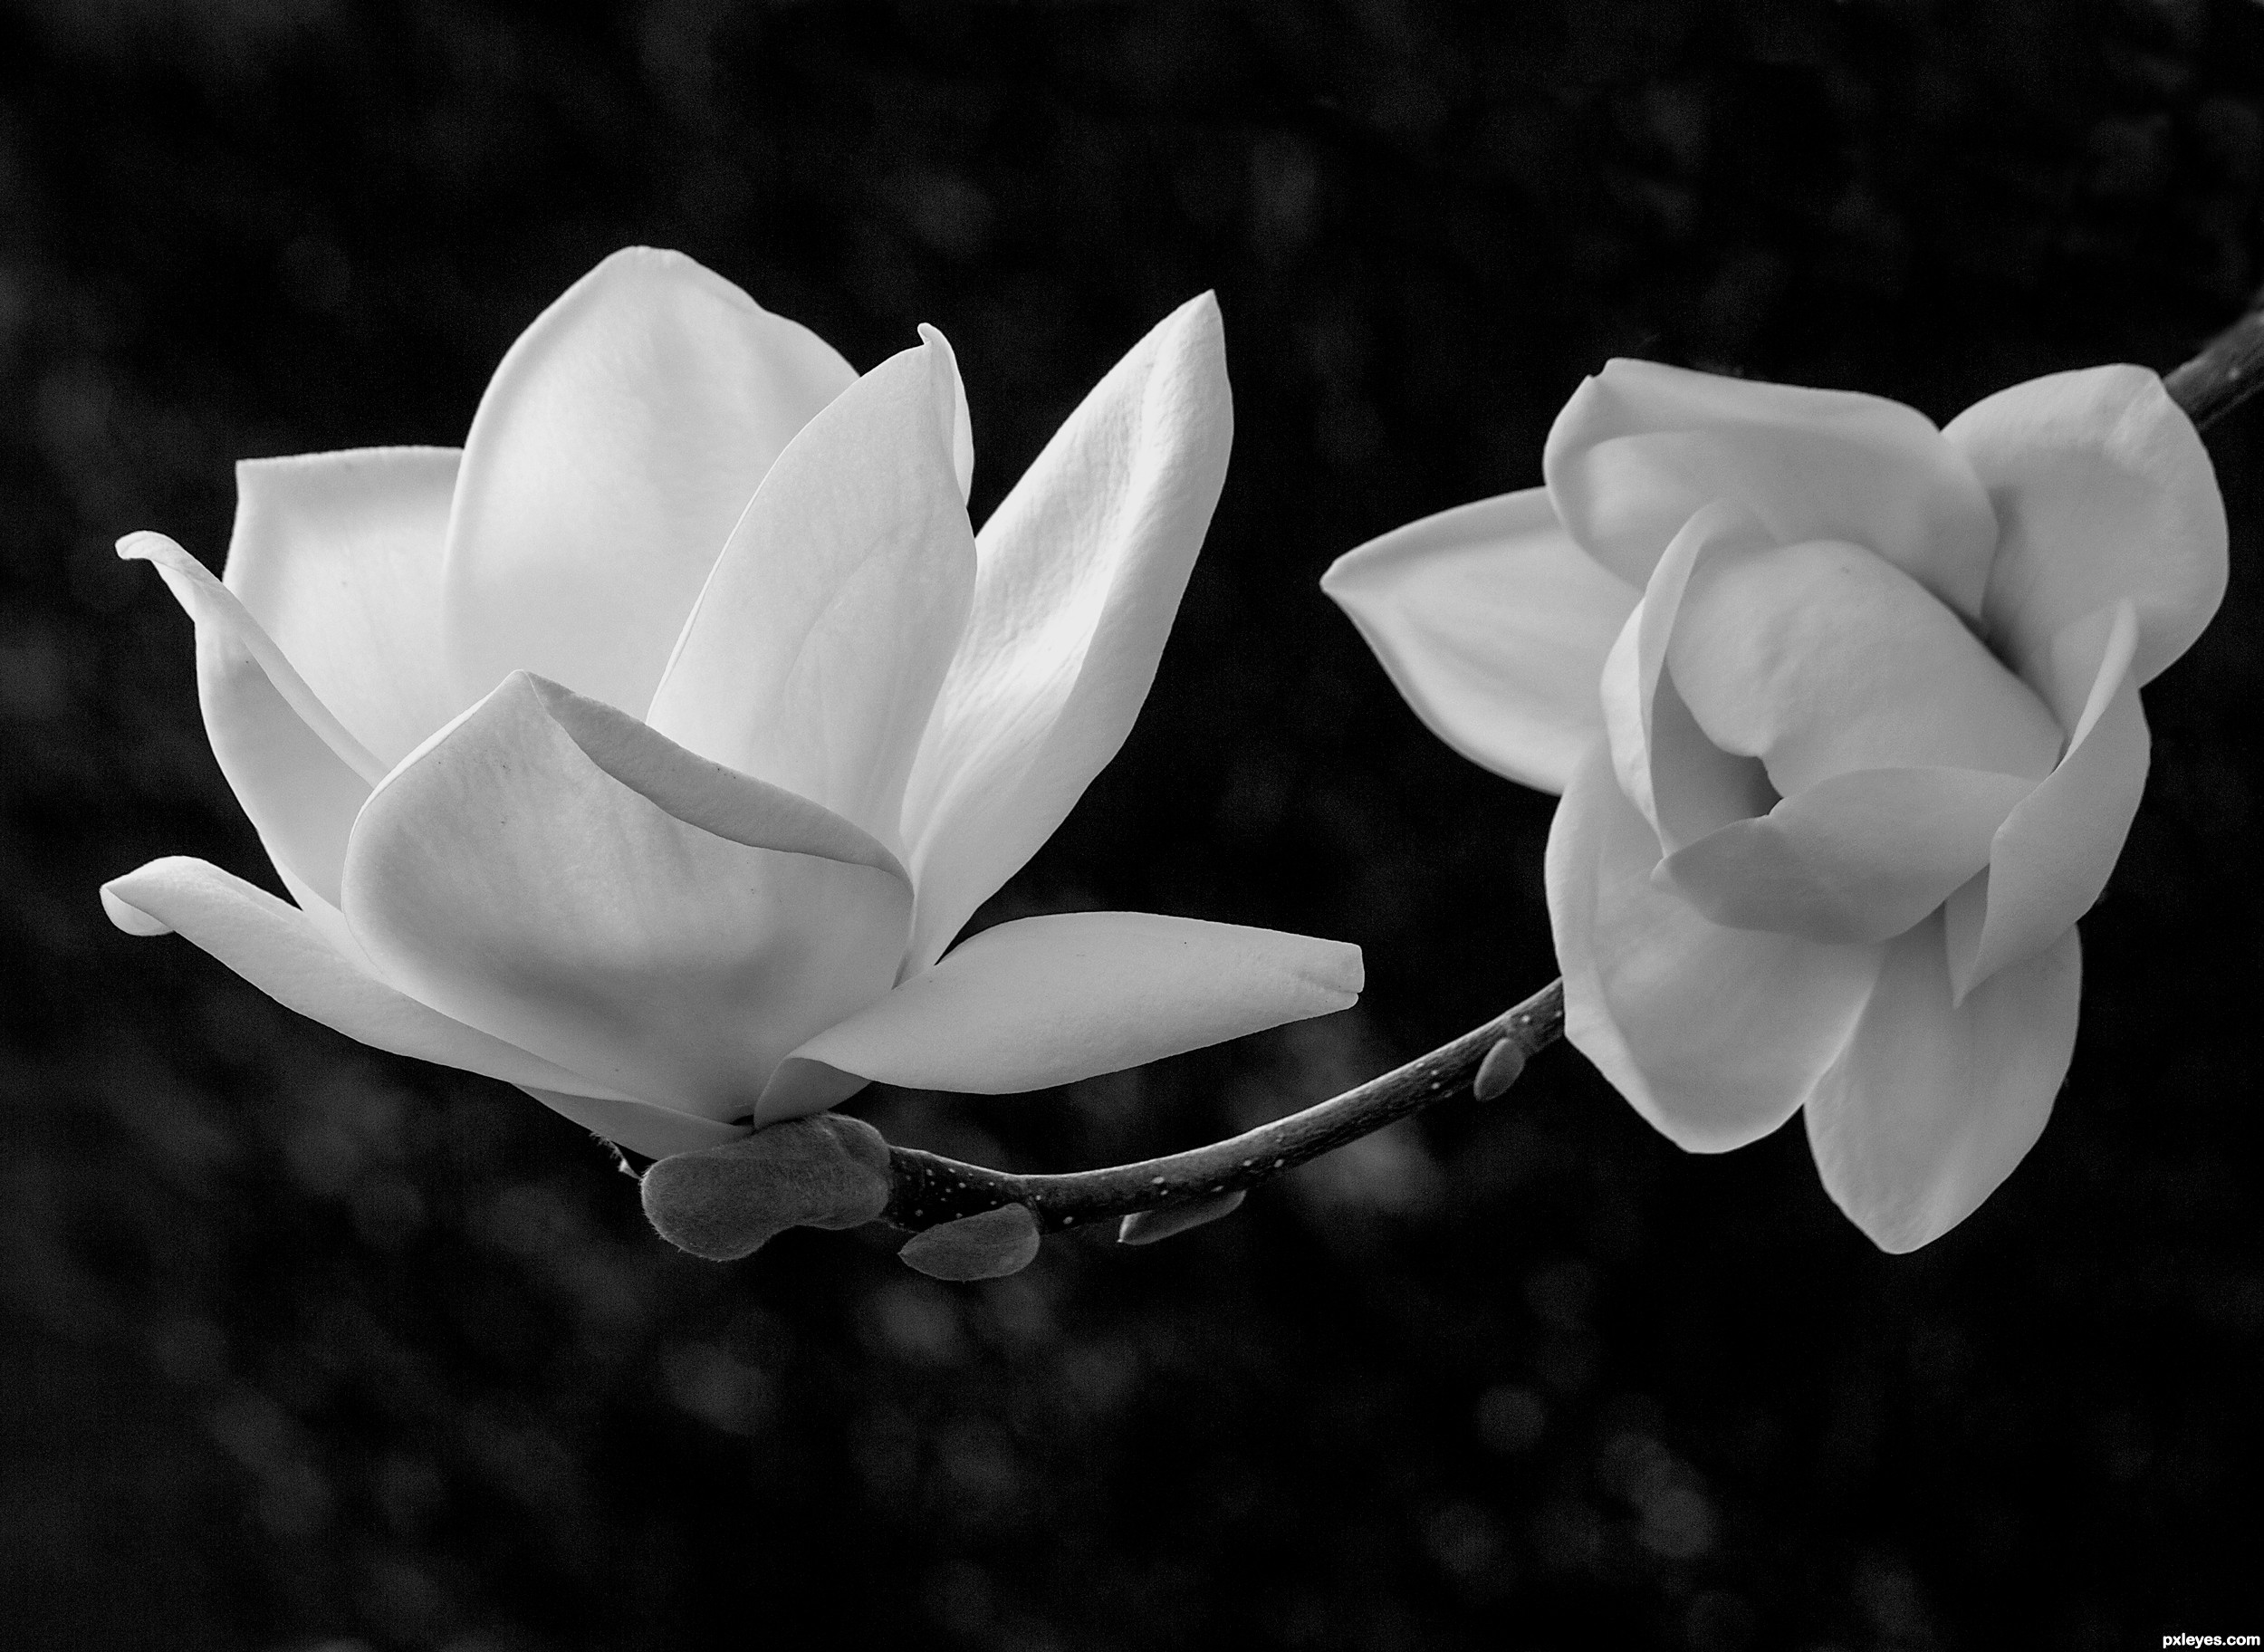 White Magnolia Picture By Friiskiwi For Bw Flowers Photography